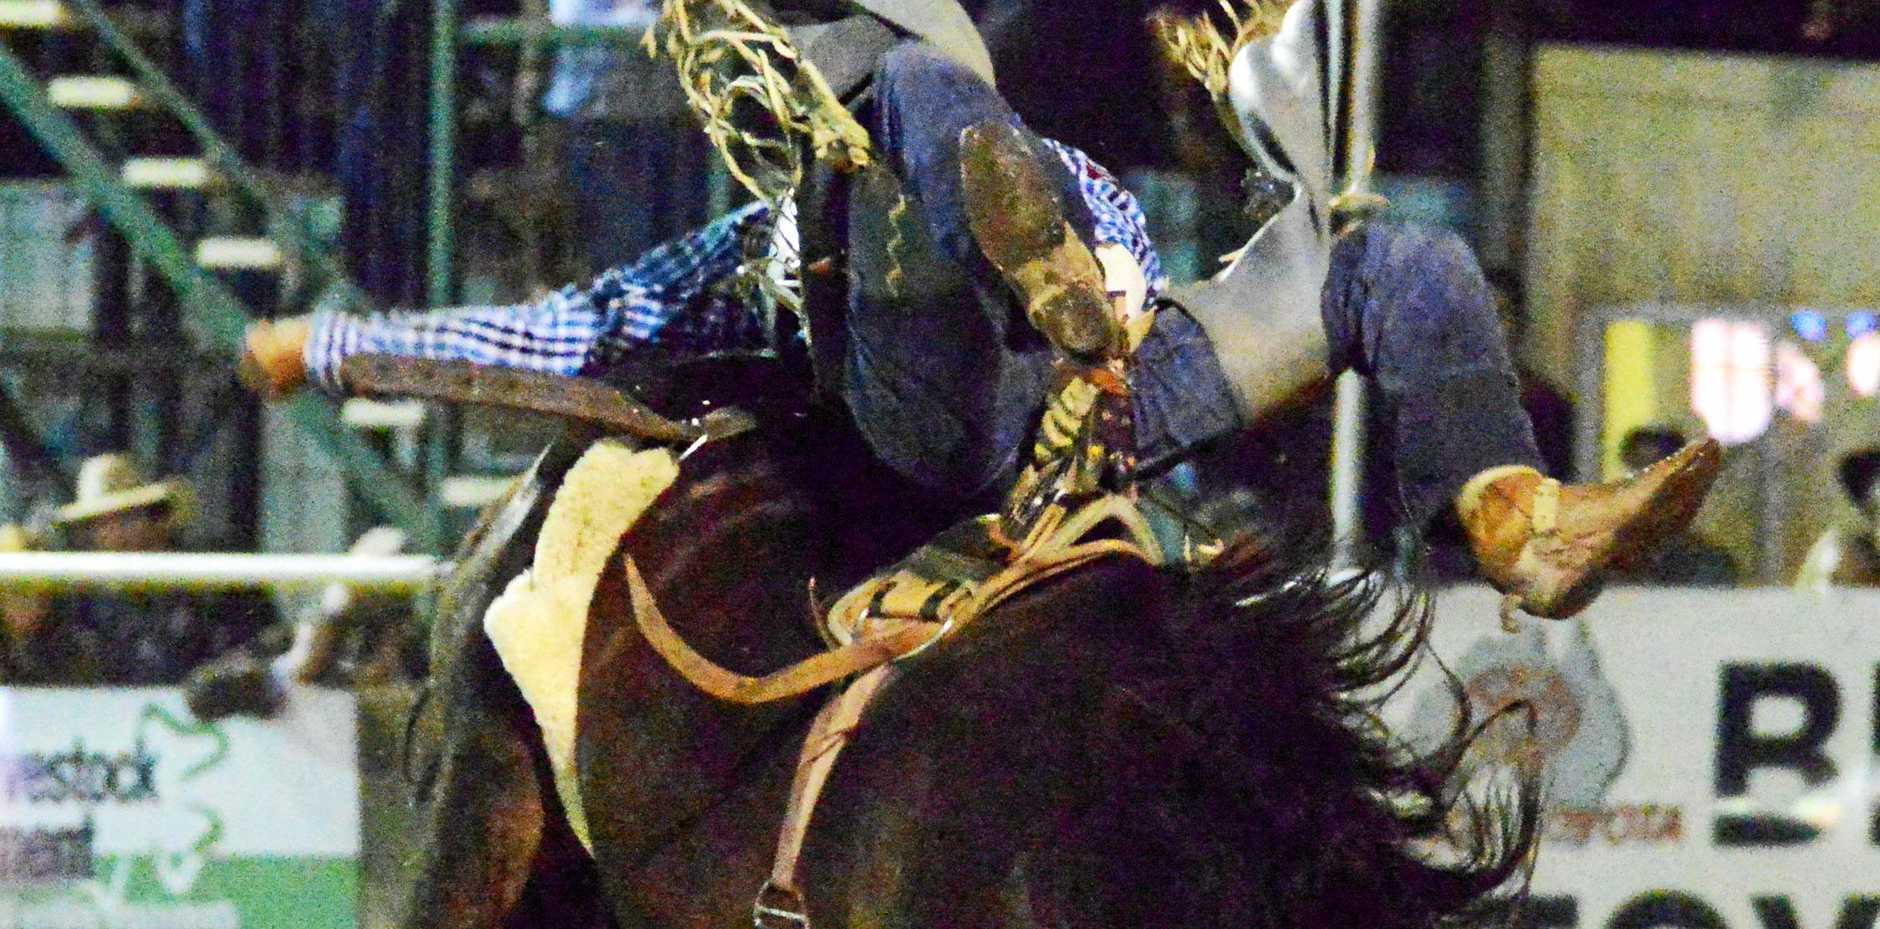 Australian Champion Fred Osman riding Gill Bros 427 at Warwick Rodeo 2016. Photo: Kenyon Sports Photos